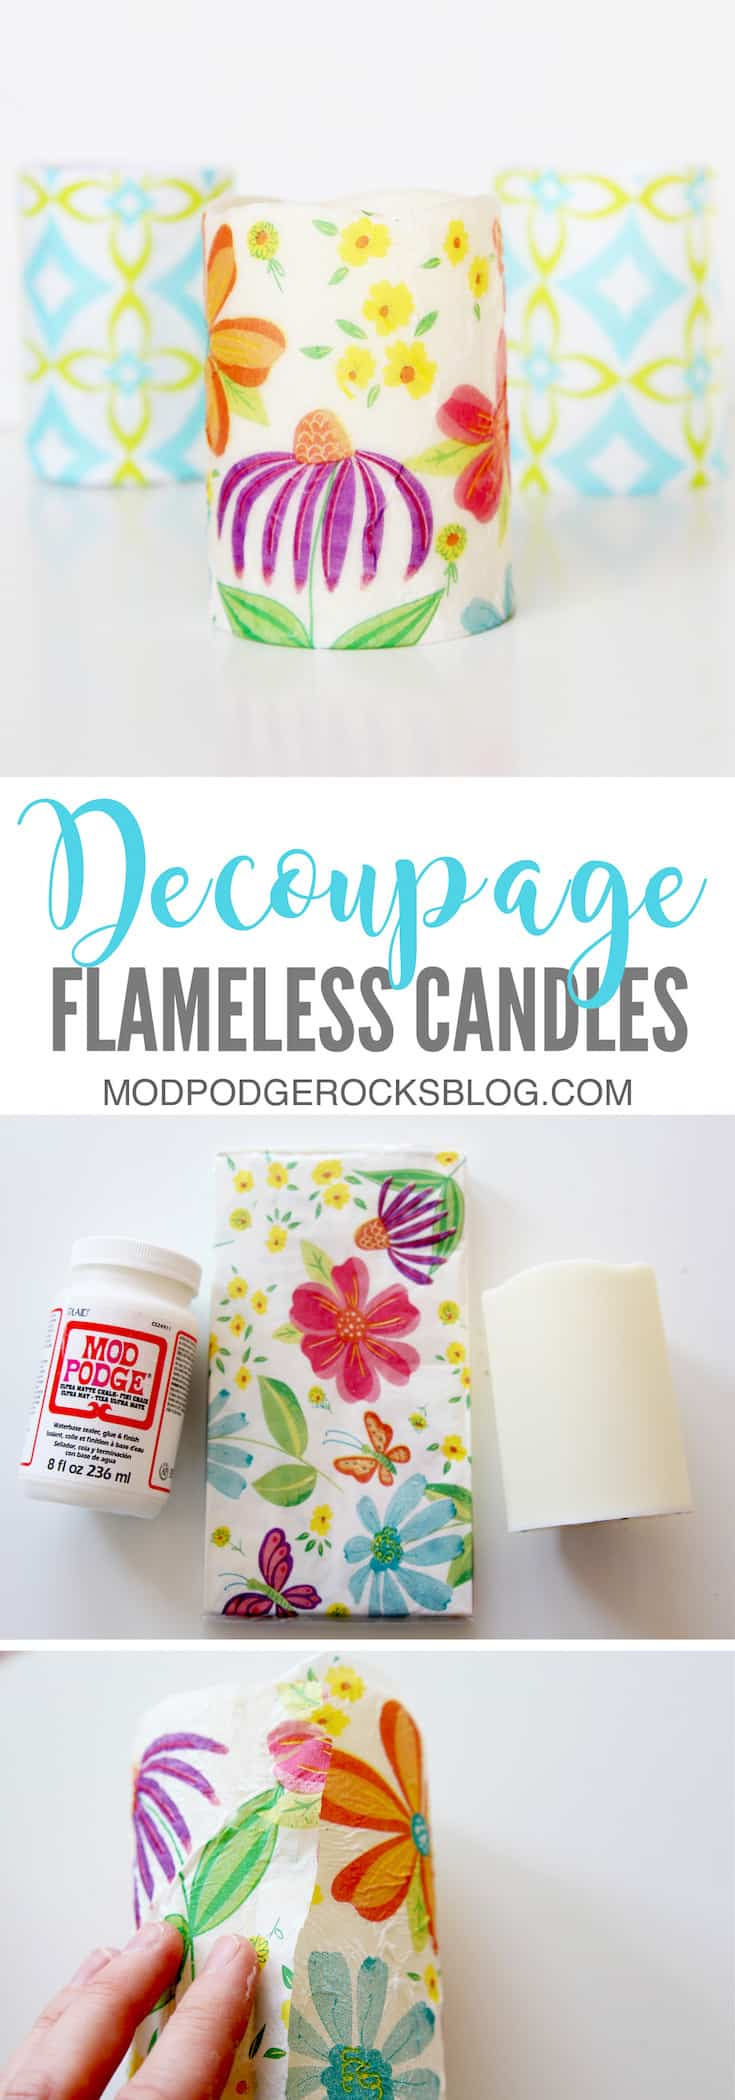 Make these easy decoupage candles with just a few materials from the dollar store, including Mod Podge and napkins. They can be customized for any occasion.